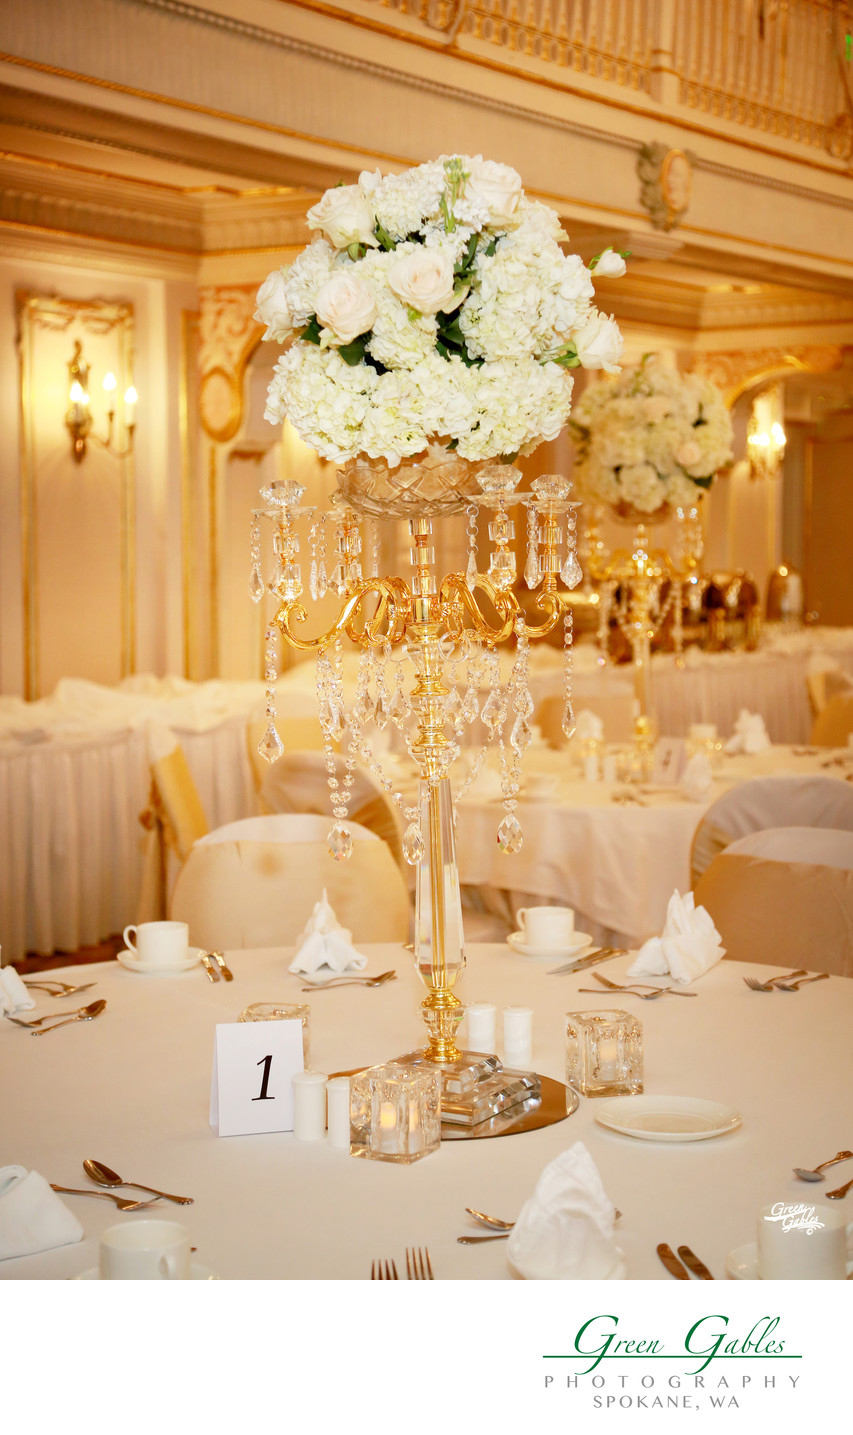 wedding decor in the Historic Davenport Hotel